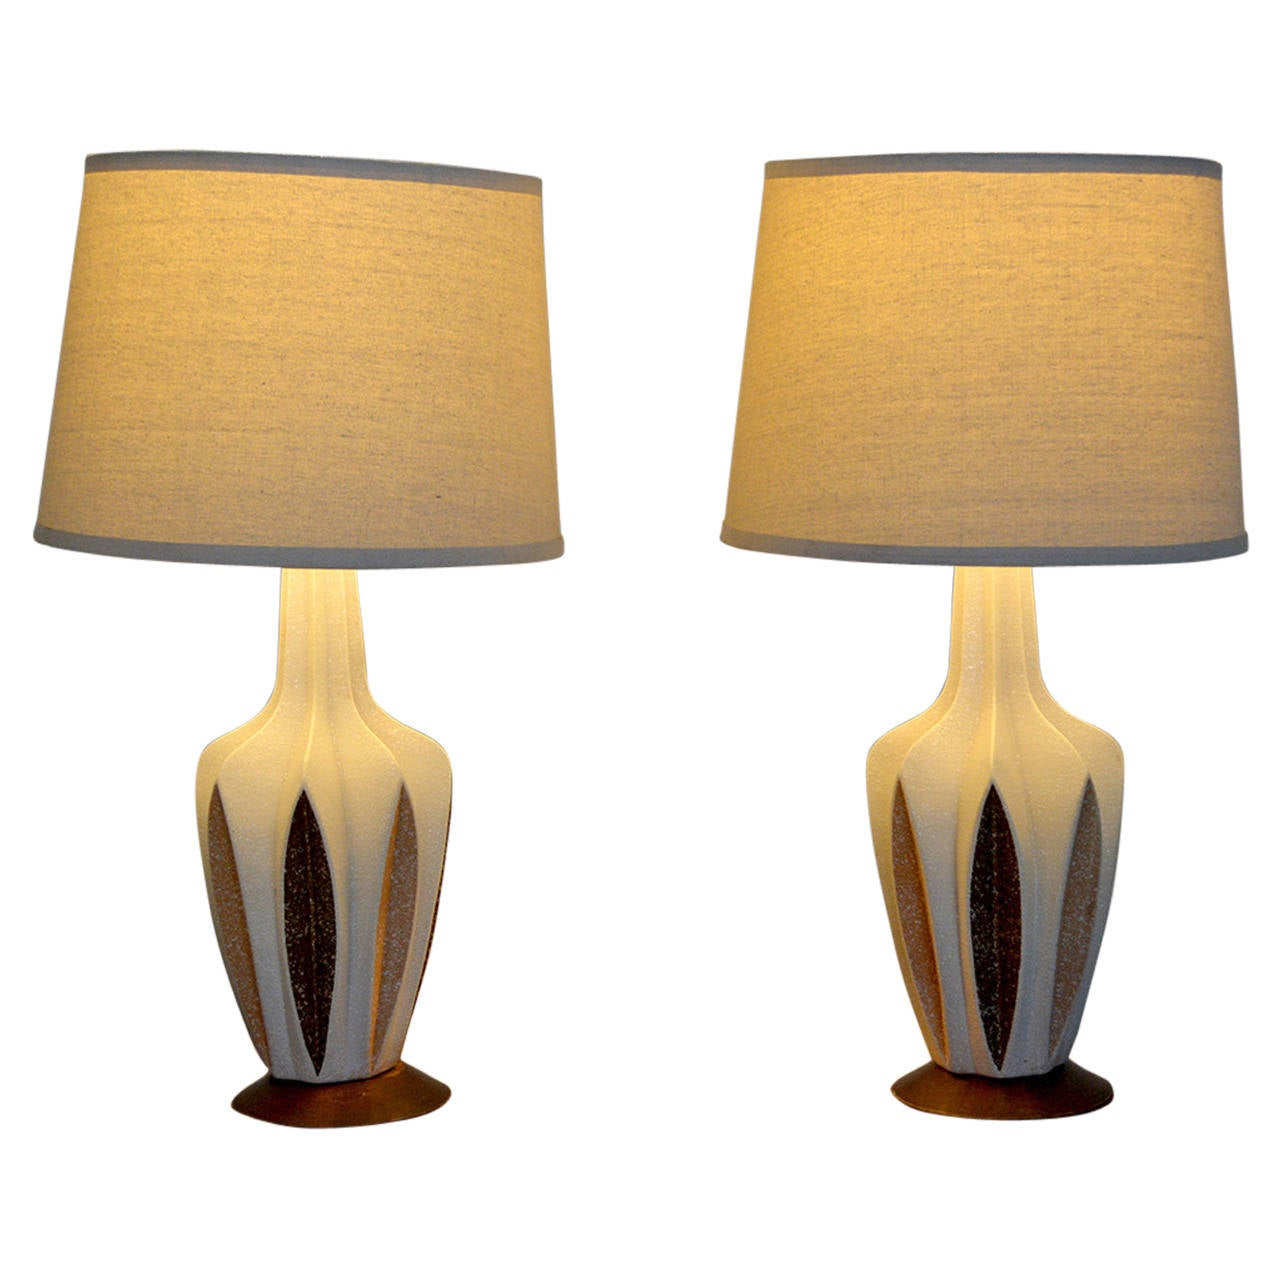 midcentury modern ceramic table lamps for sale at stdibs - midcentury modern ceramic table lamps